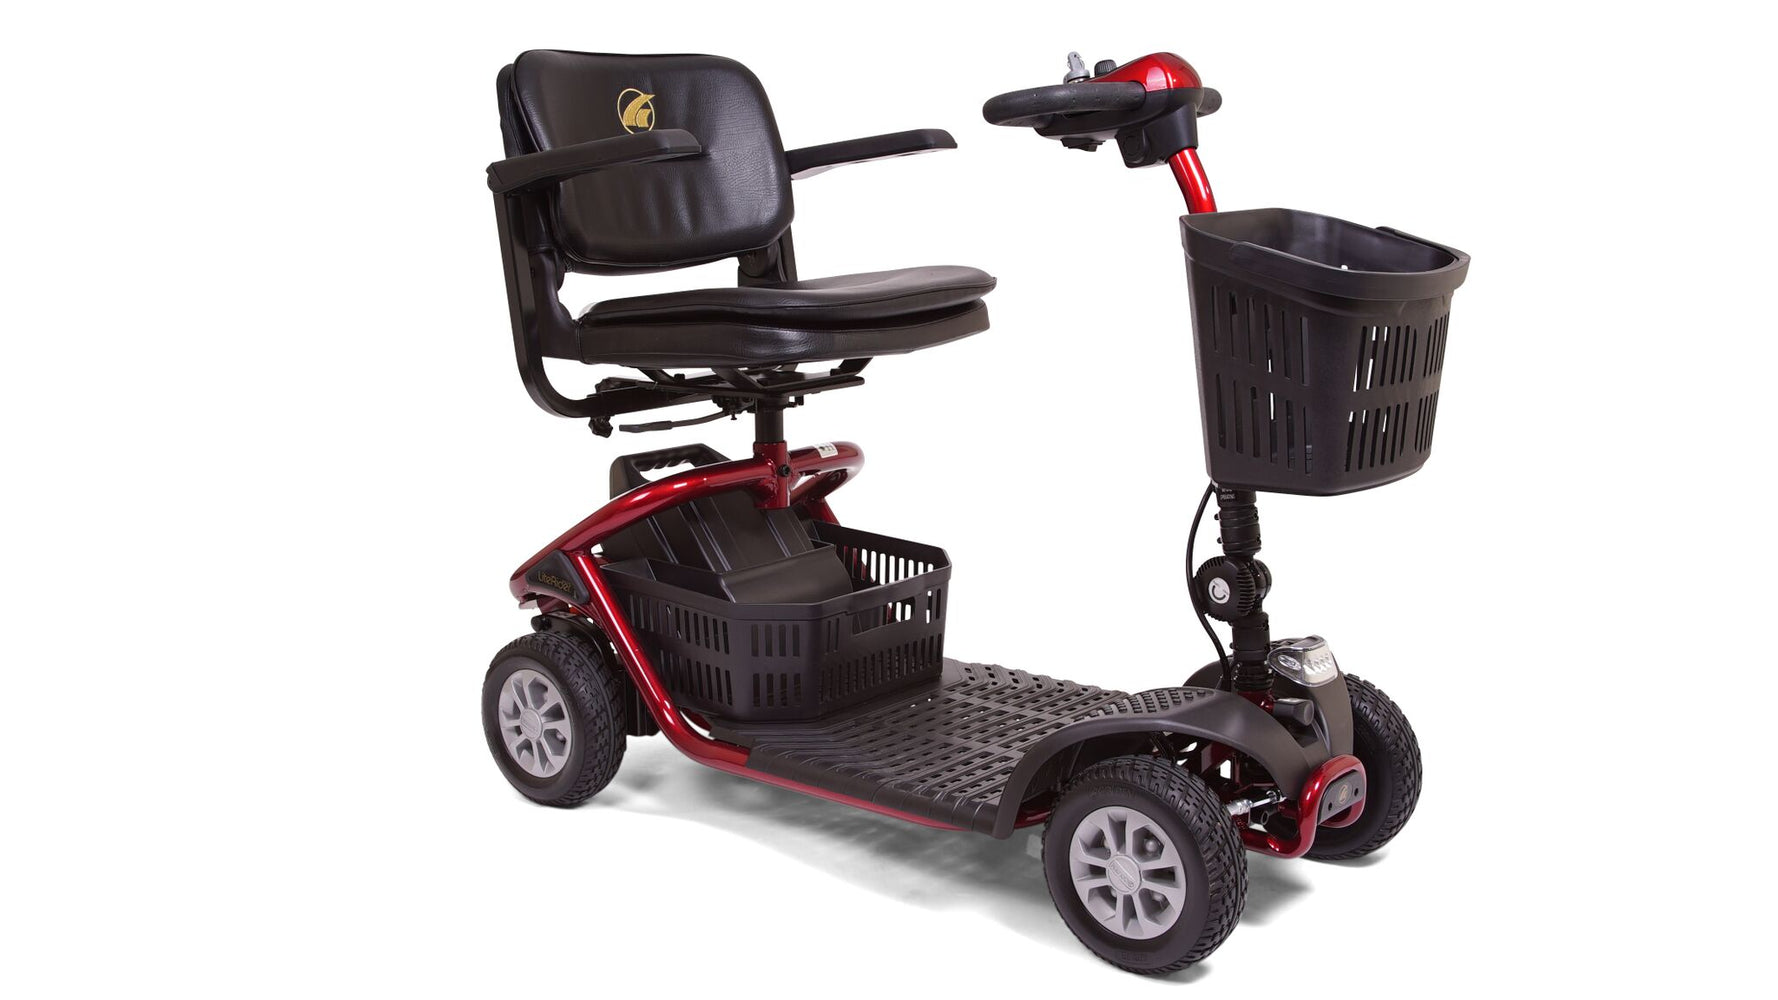 Golden Technology 4 Wheel LiteRider Mid Size Scooter